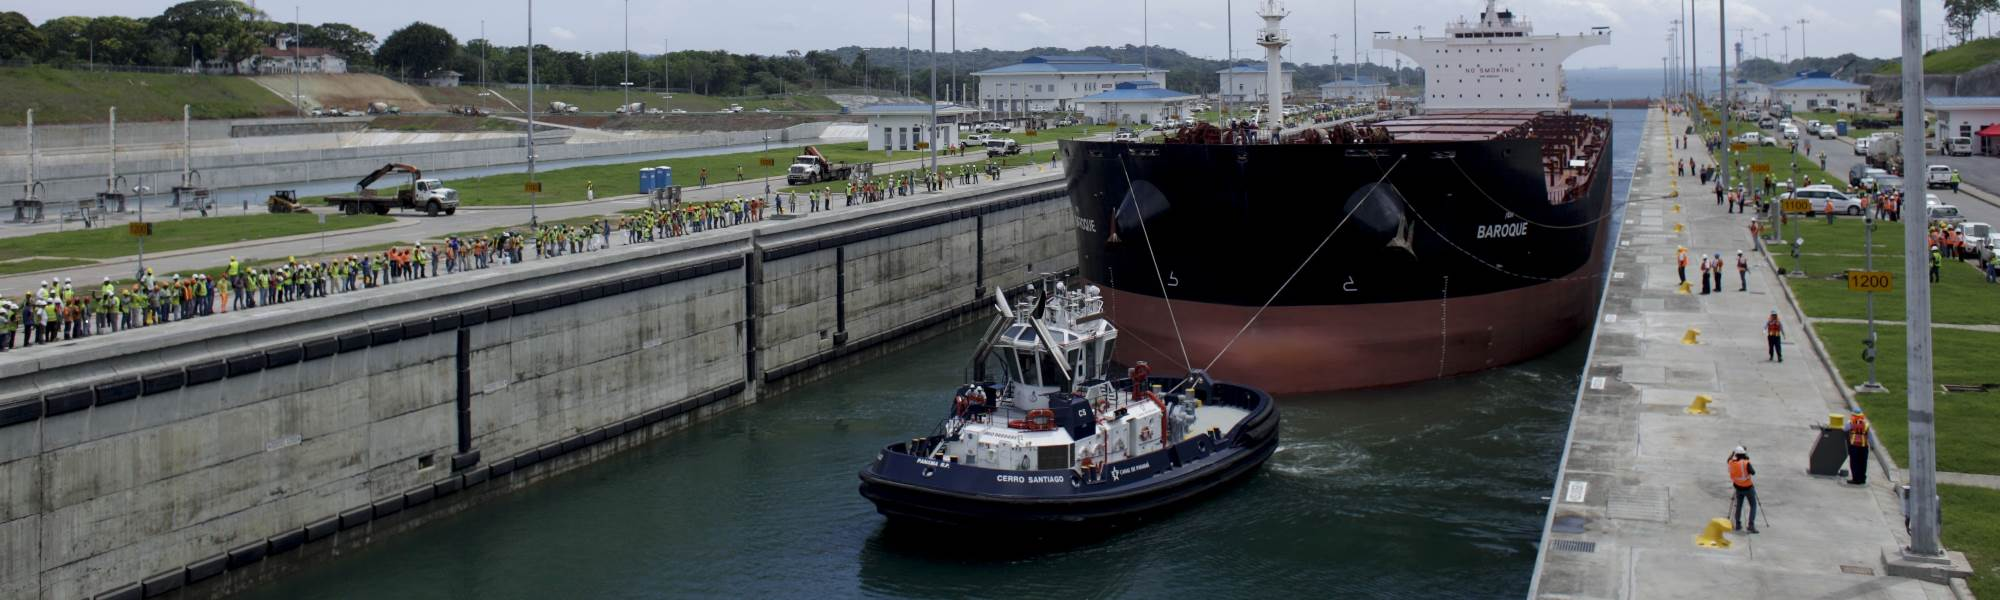 Panama Canal Expansion